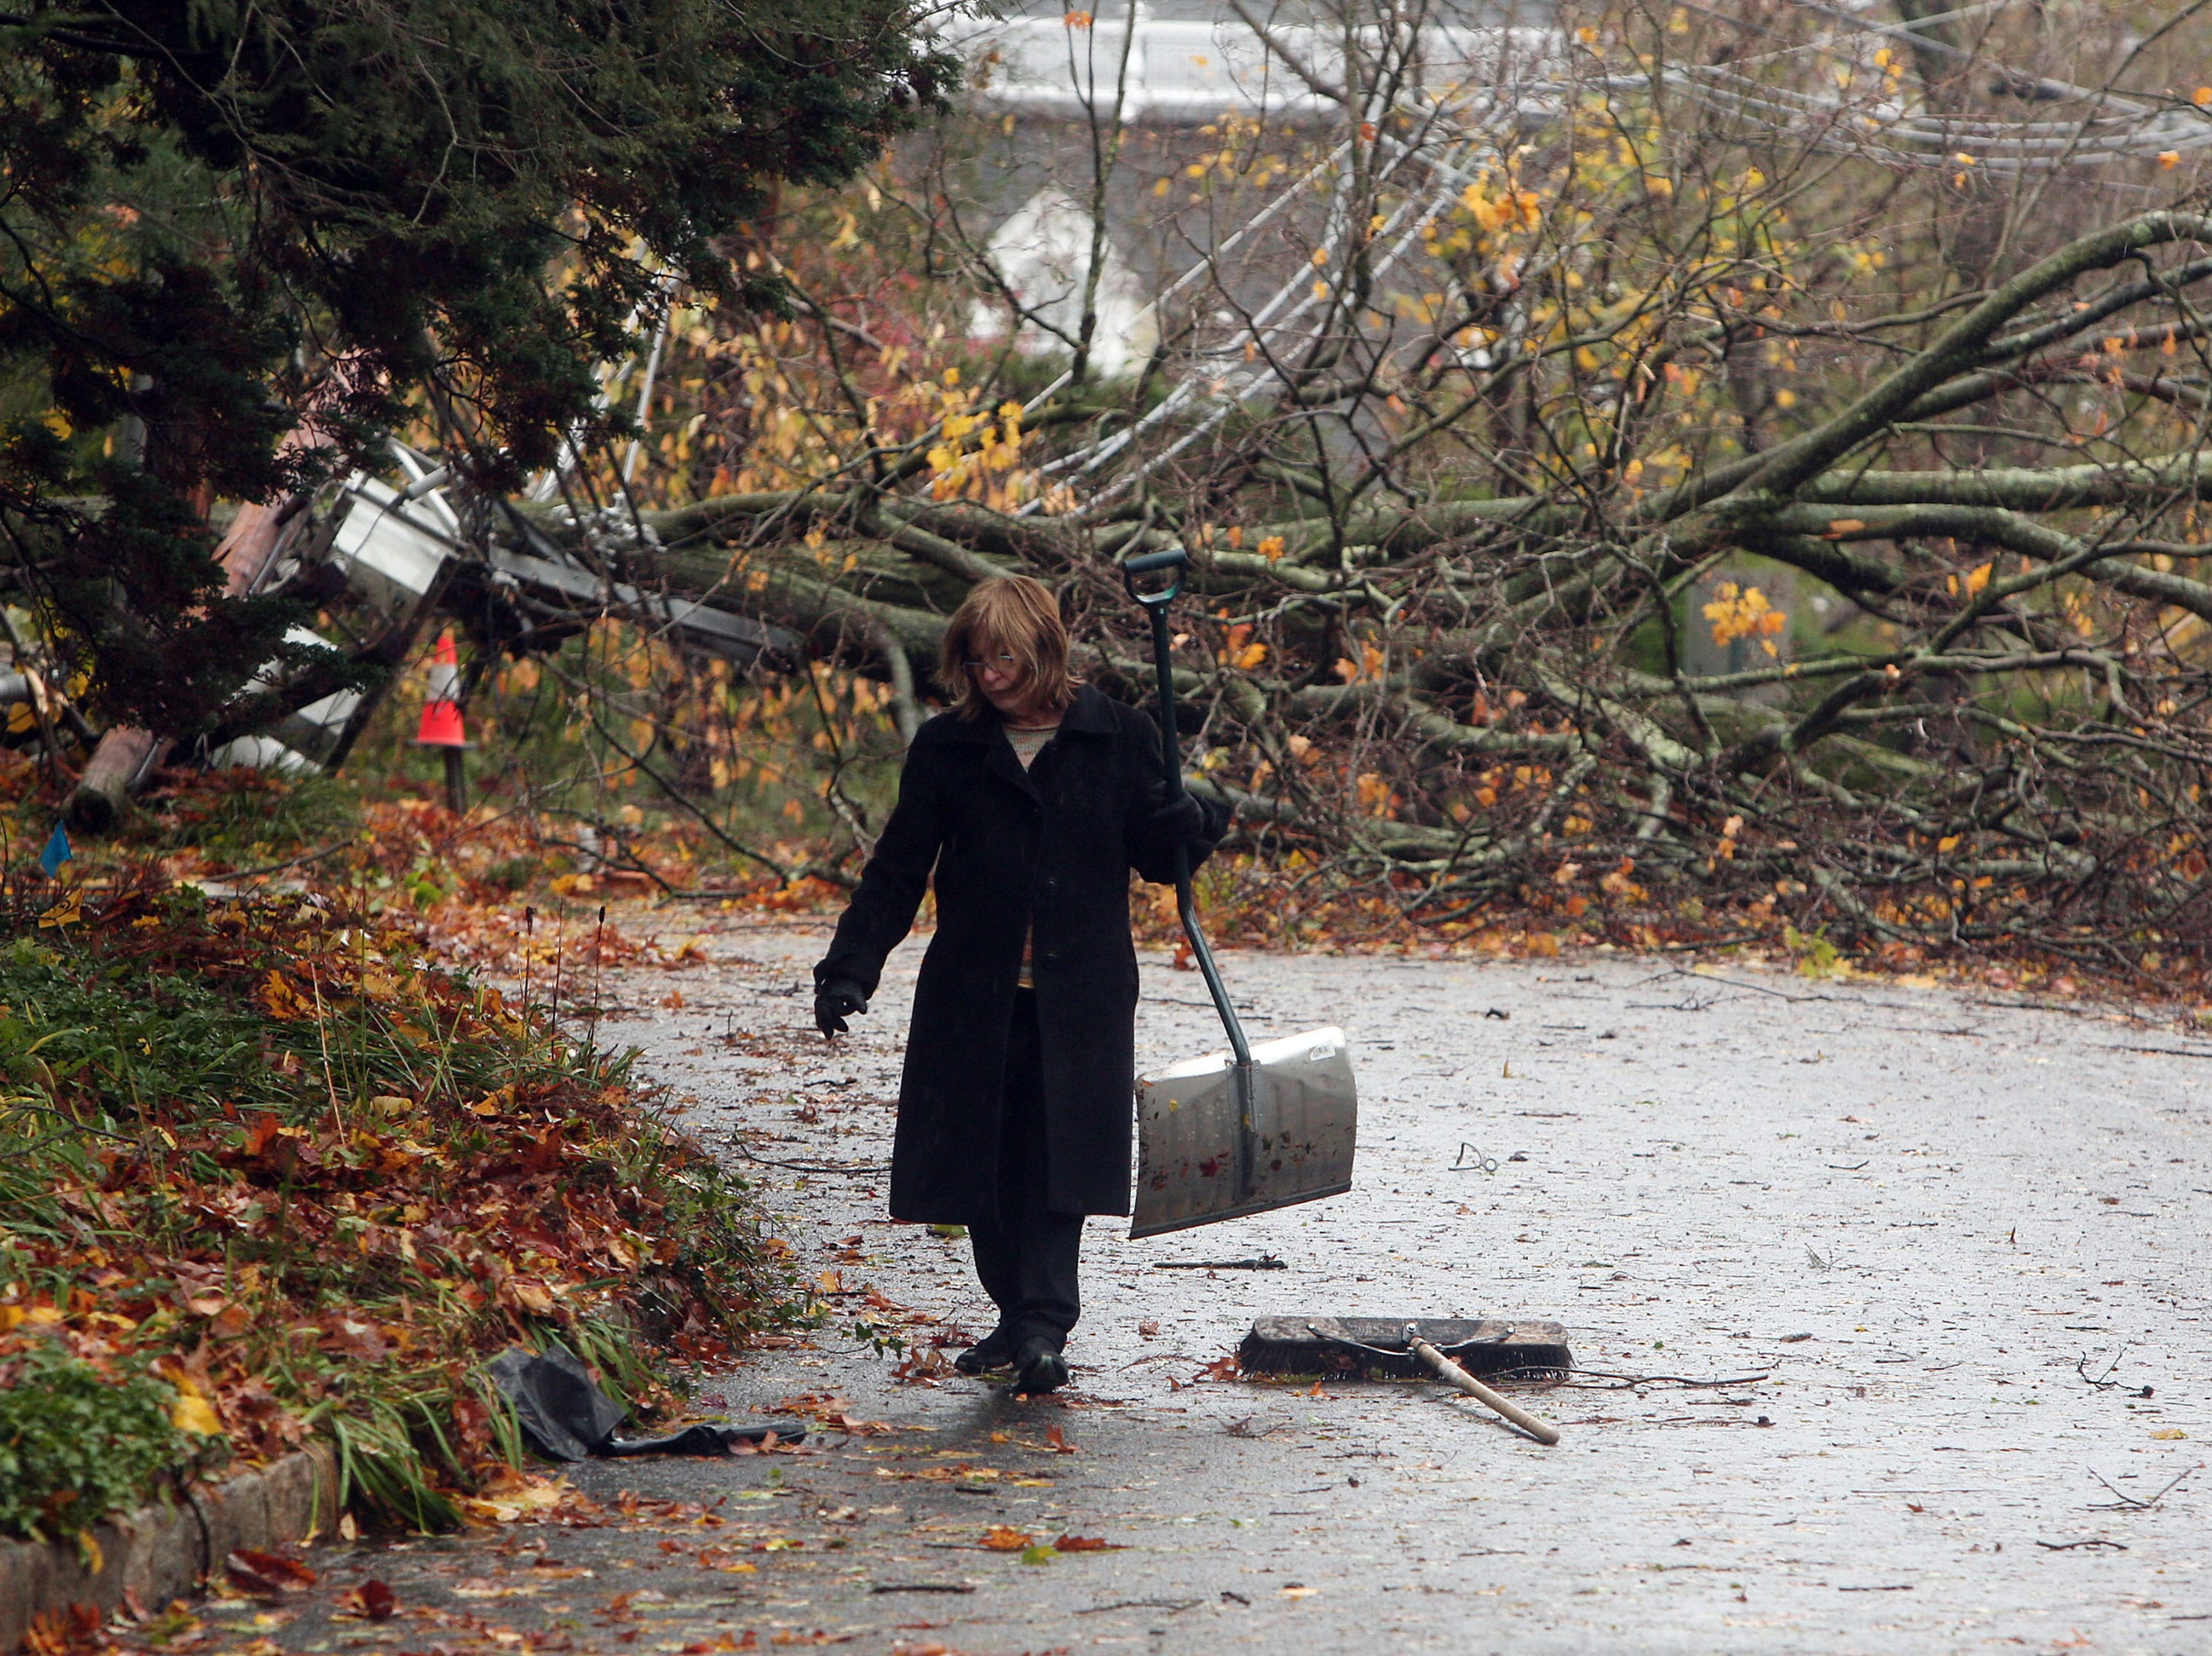 Morristown, NJ-- October 30, 2012--Pat Podell of Morristown, NJ clears the street of fallen leaves on Ogden Street in the aftermath of Hurricane Sandy. 